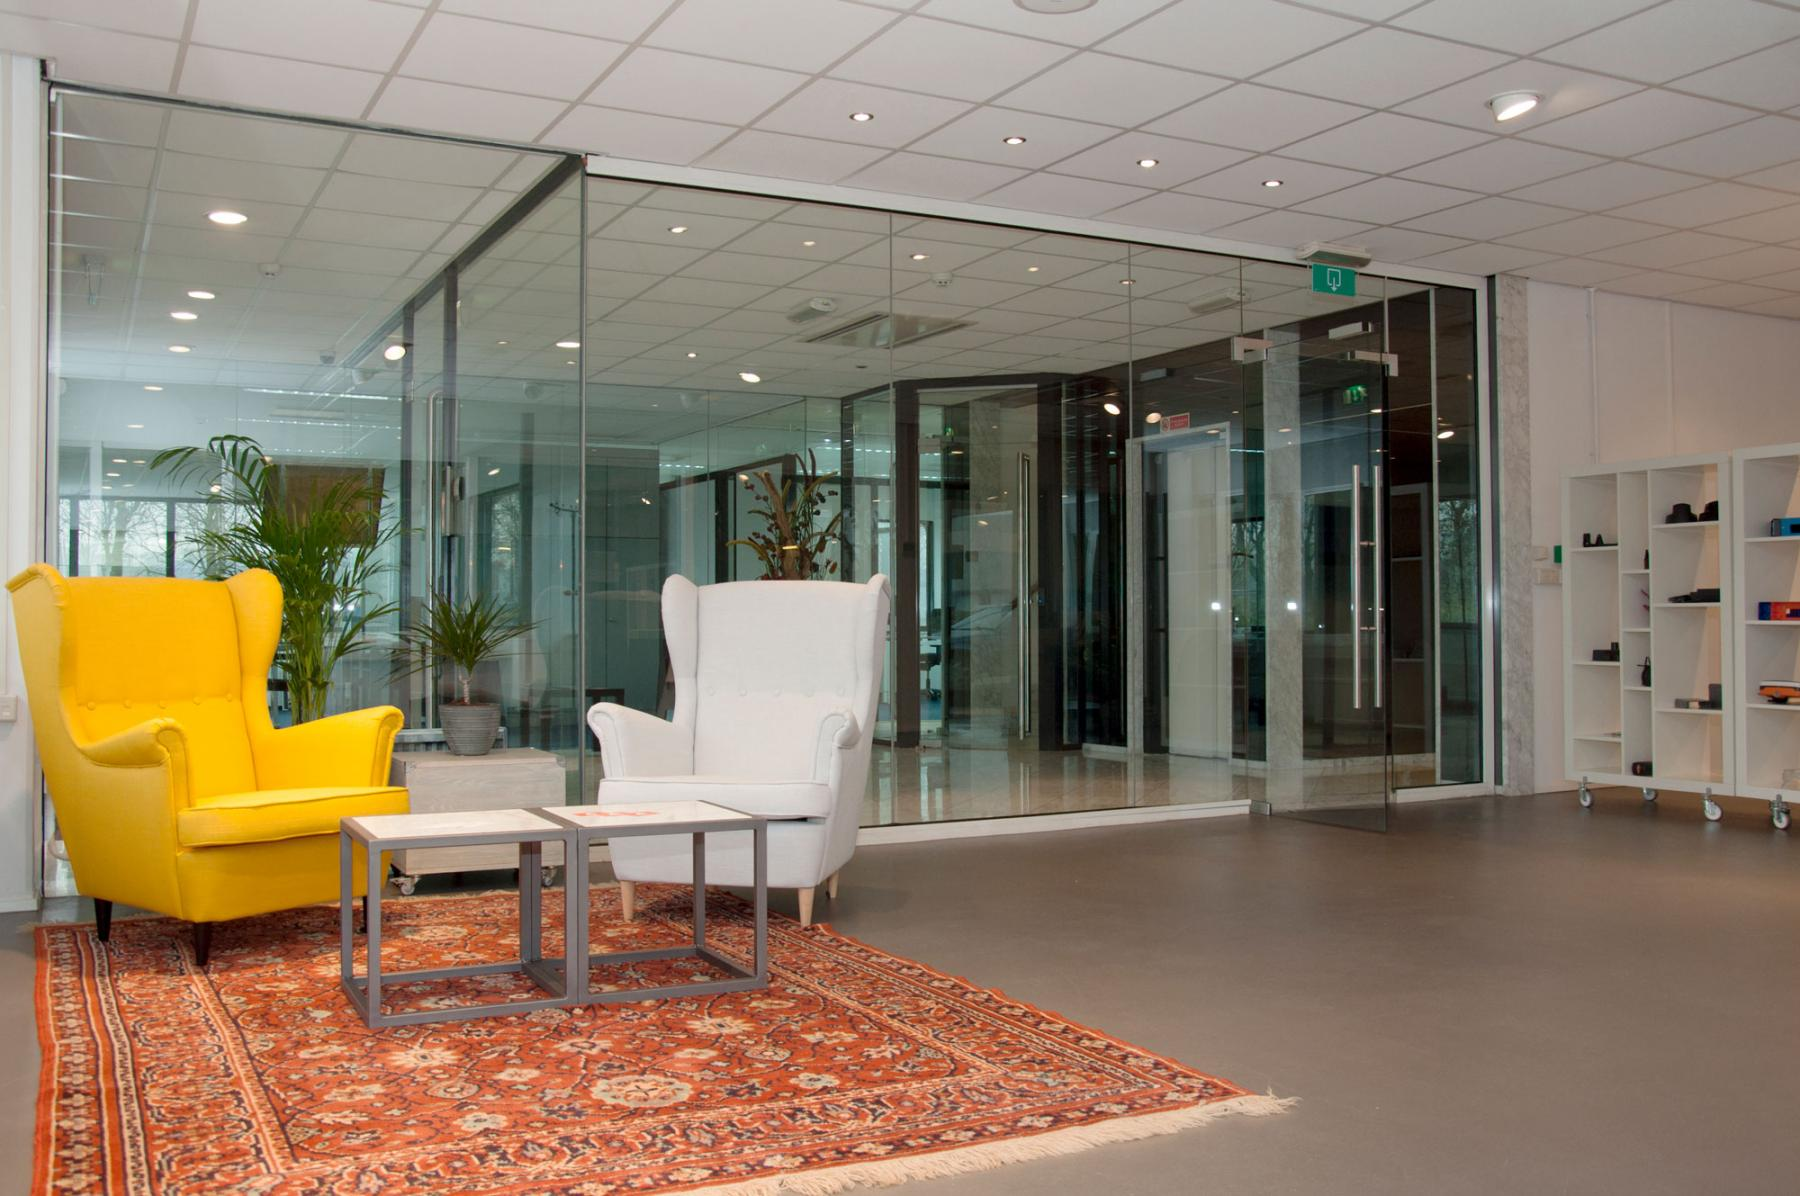 The seating area with a glass wall